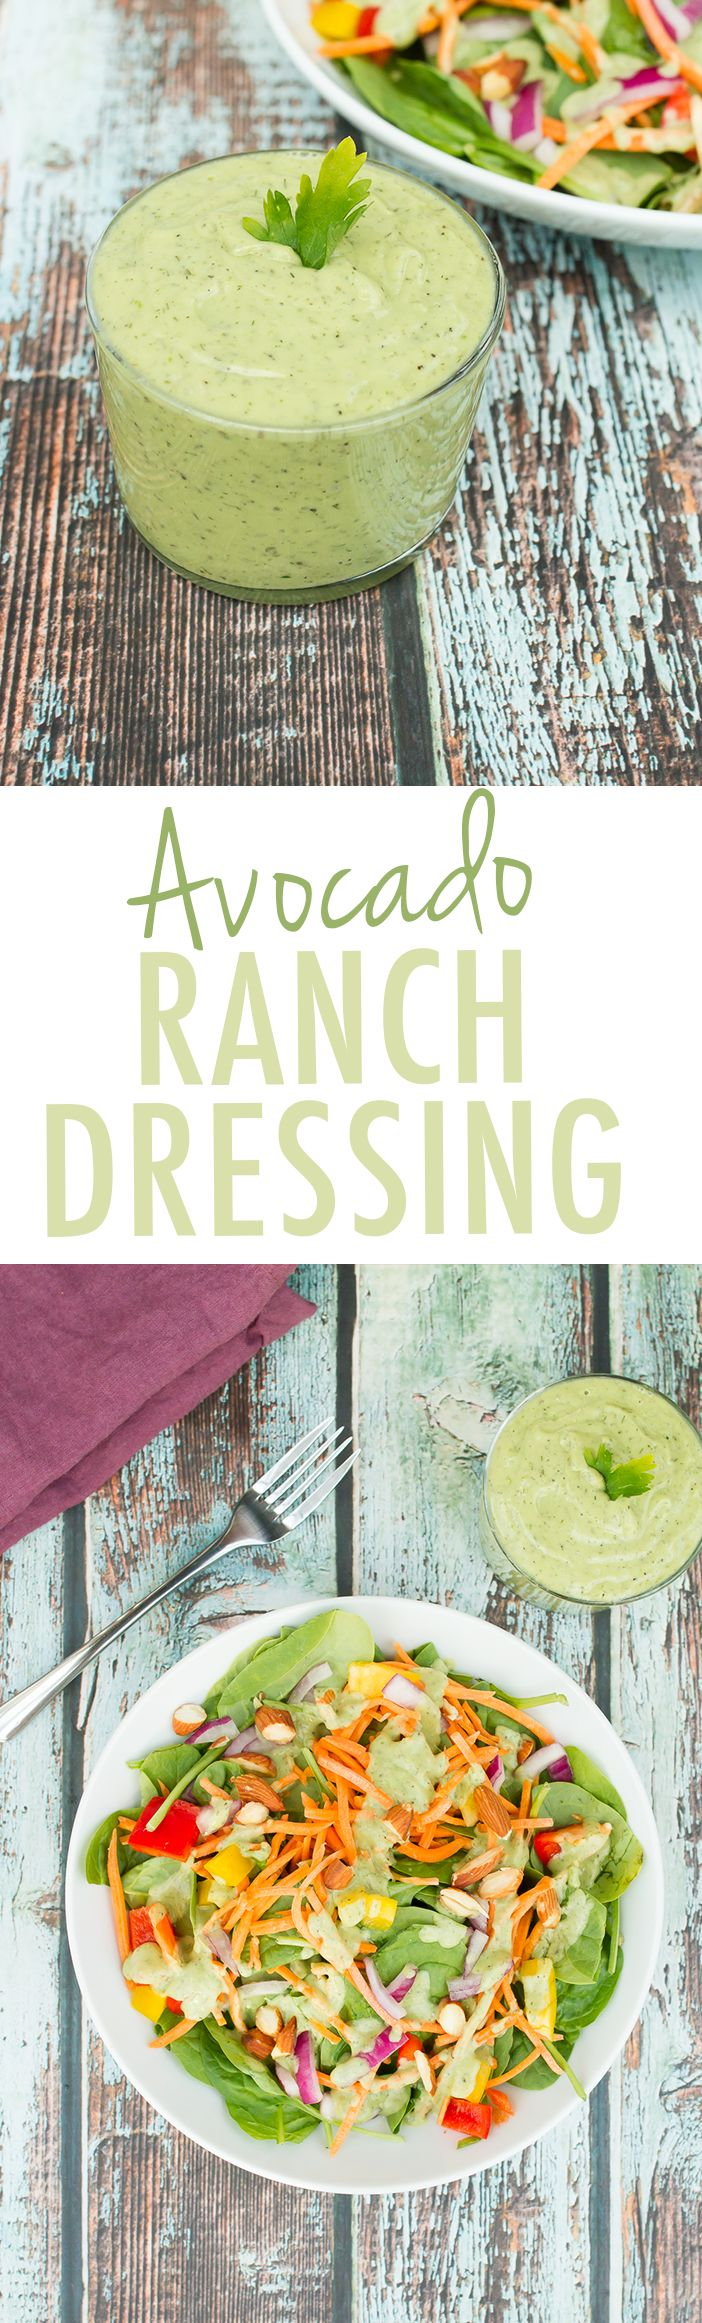 Homemade avocado ranch dressing that's unbelievably creamy, vegan, paleo and gluten-free! Perfect for dressing any type of salad or as a dip for veggies.